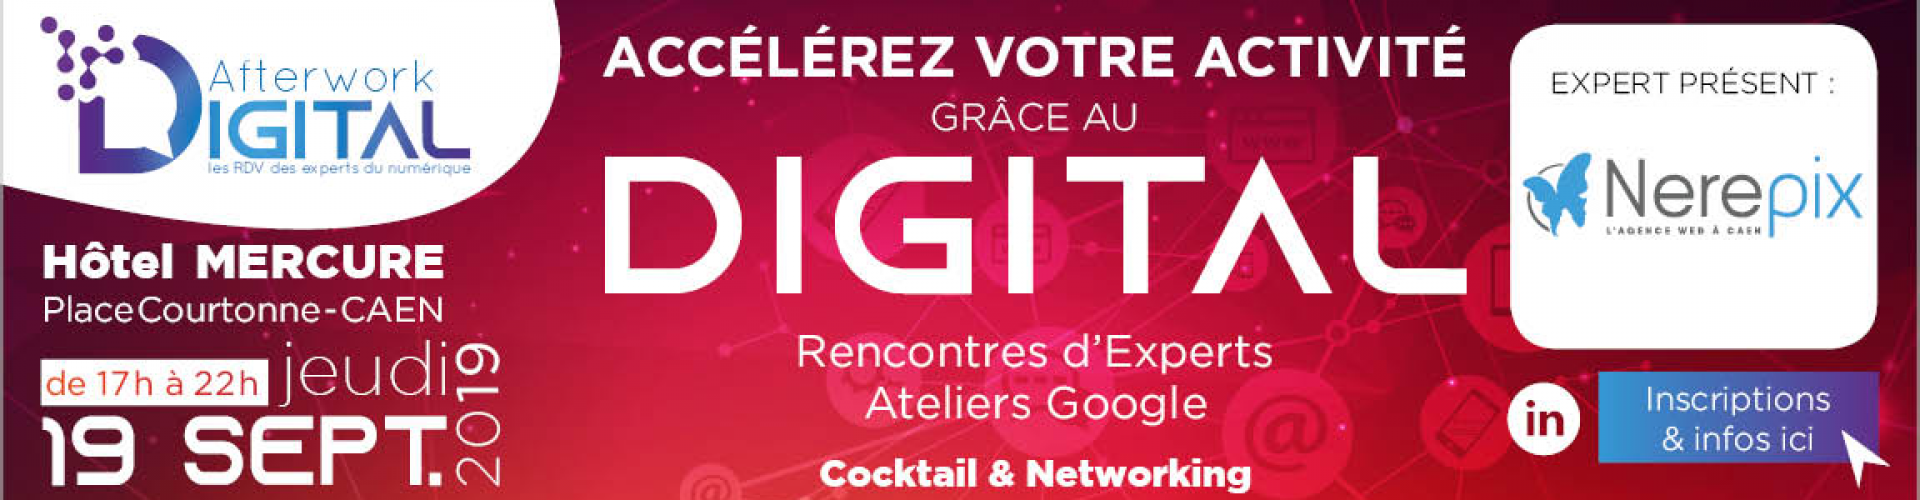 Participez à l'Afterwork Digital #1 à Caen